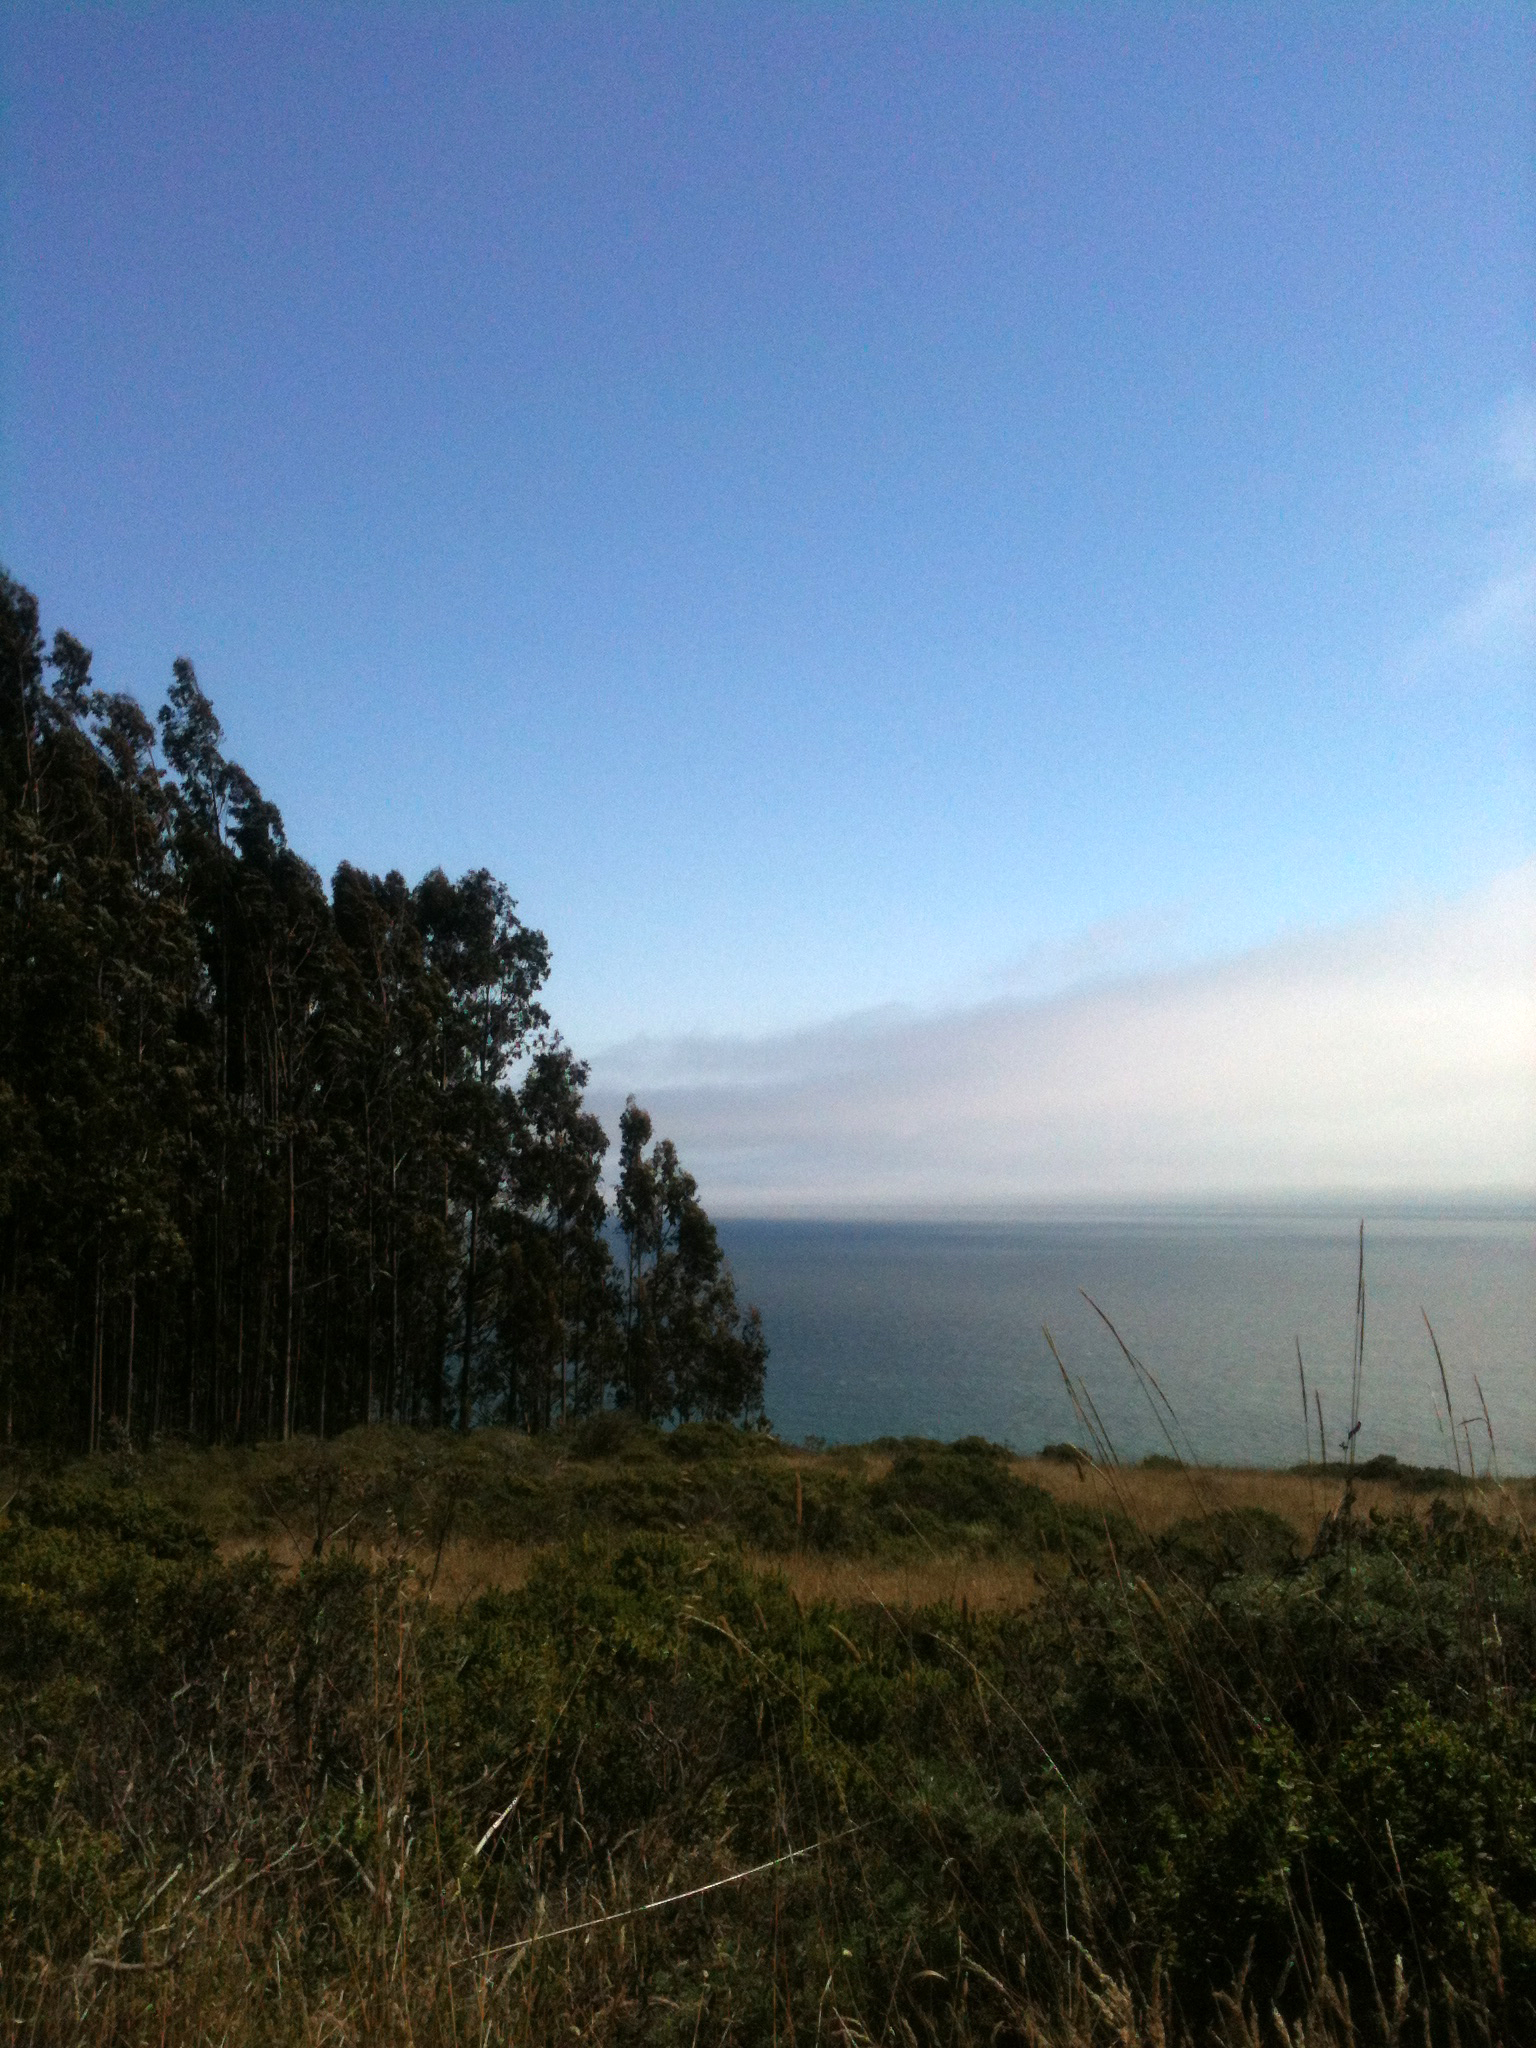 Just out of the Eucalyptus, a grand view of the sea.